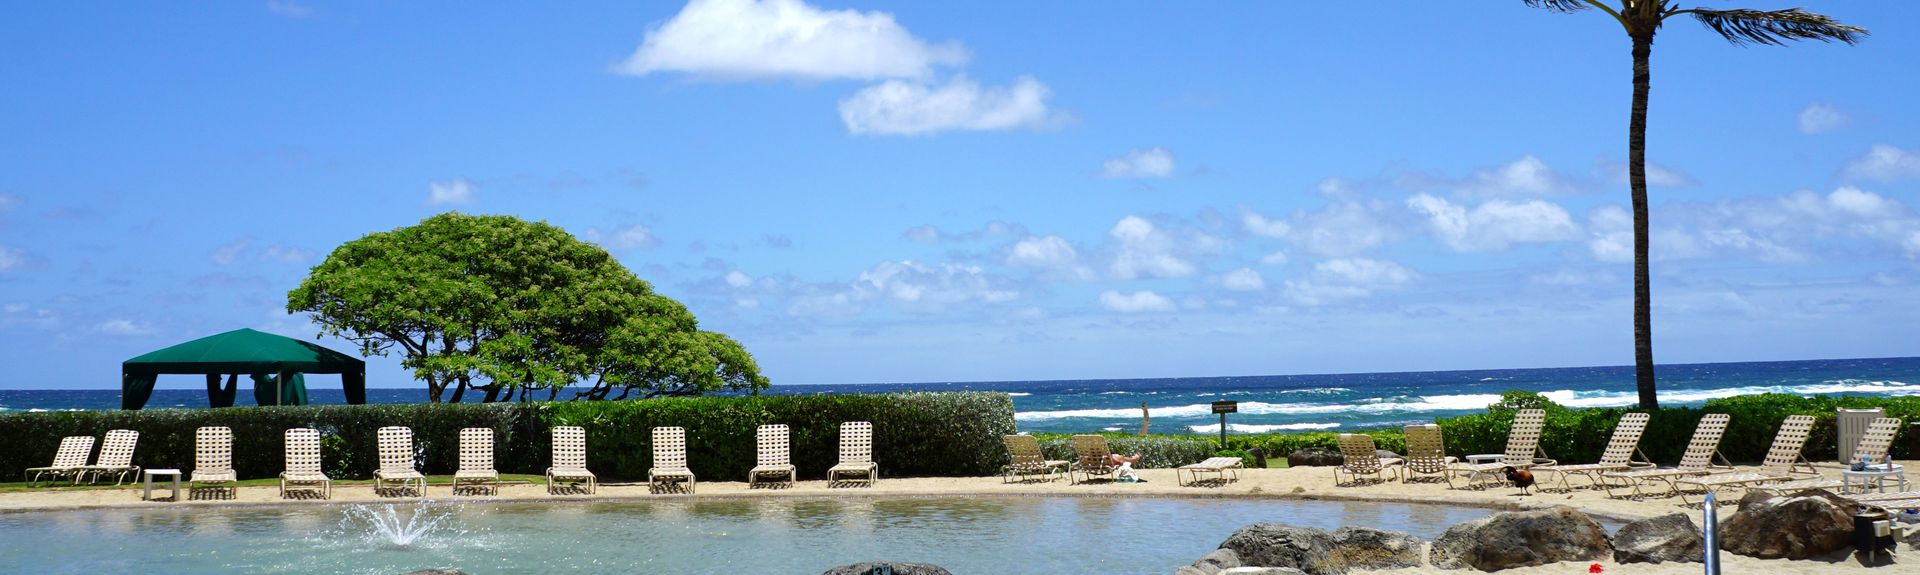 Kauai Beach Resort, Lihue, HI, USA